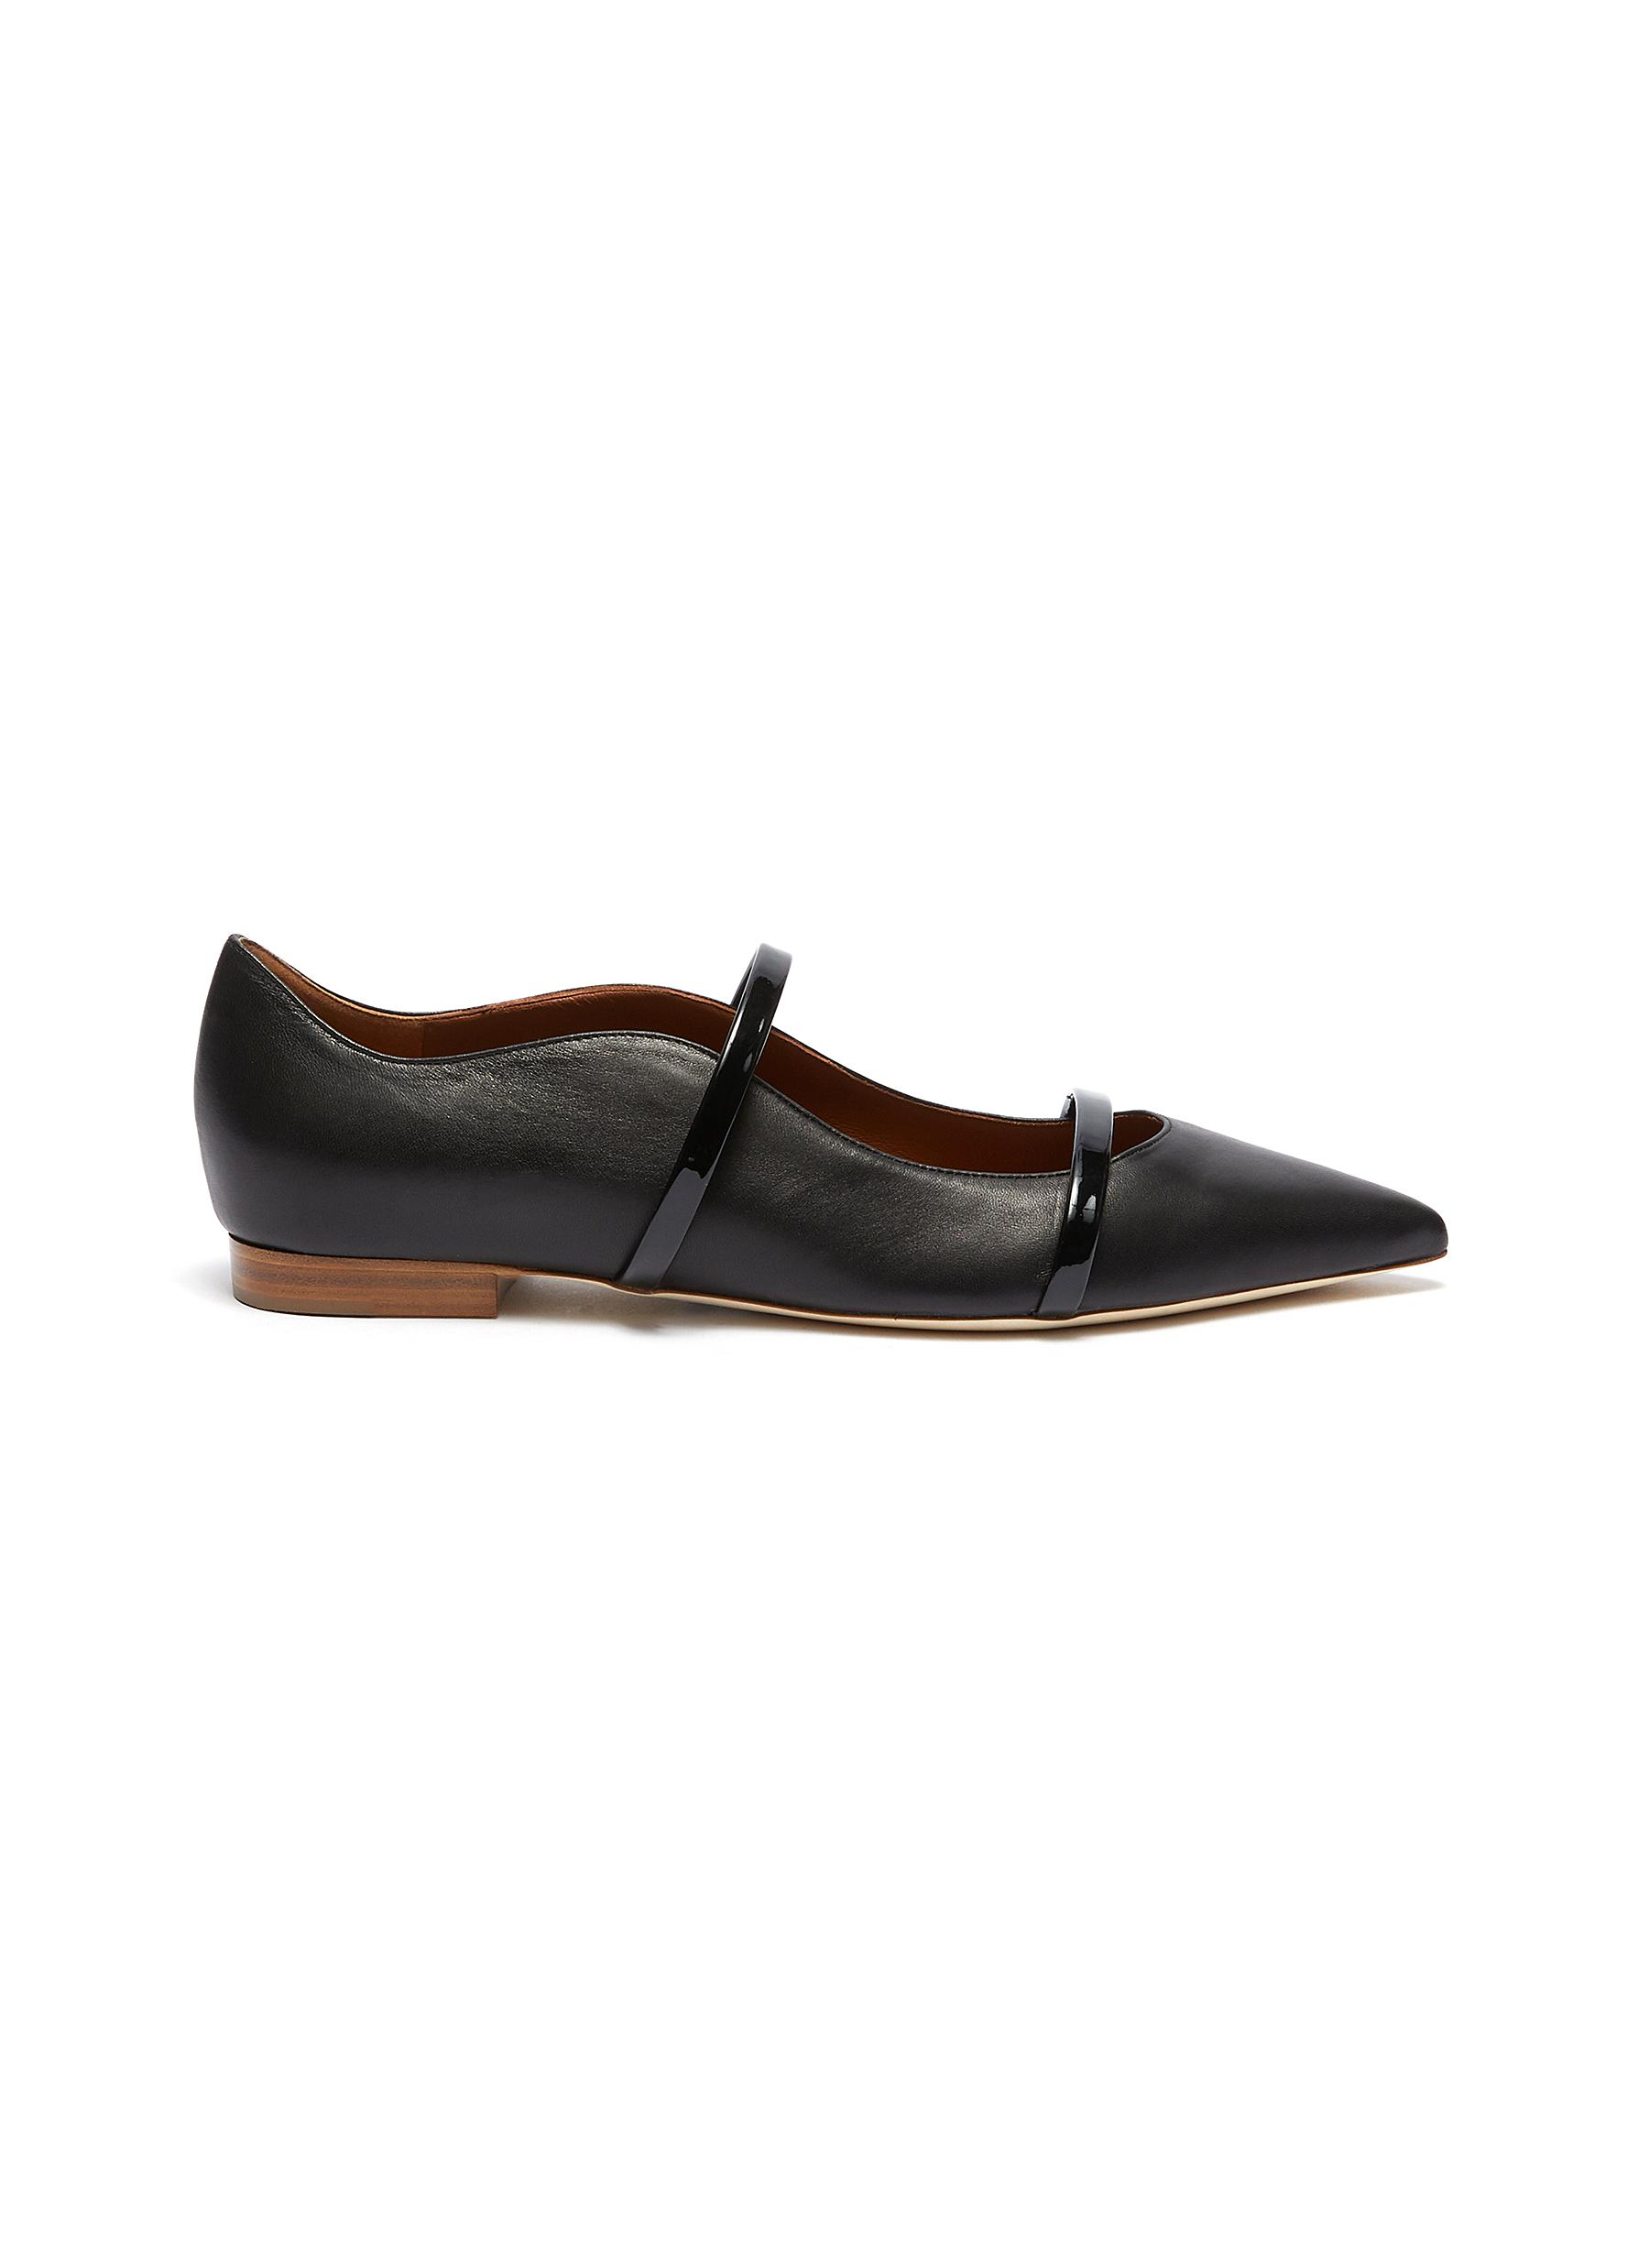 Maureen strappy leather flats by Malone Souliers